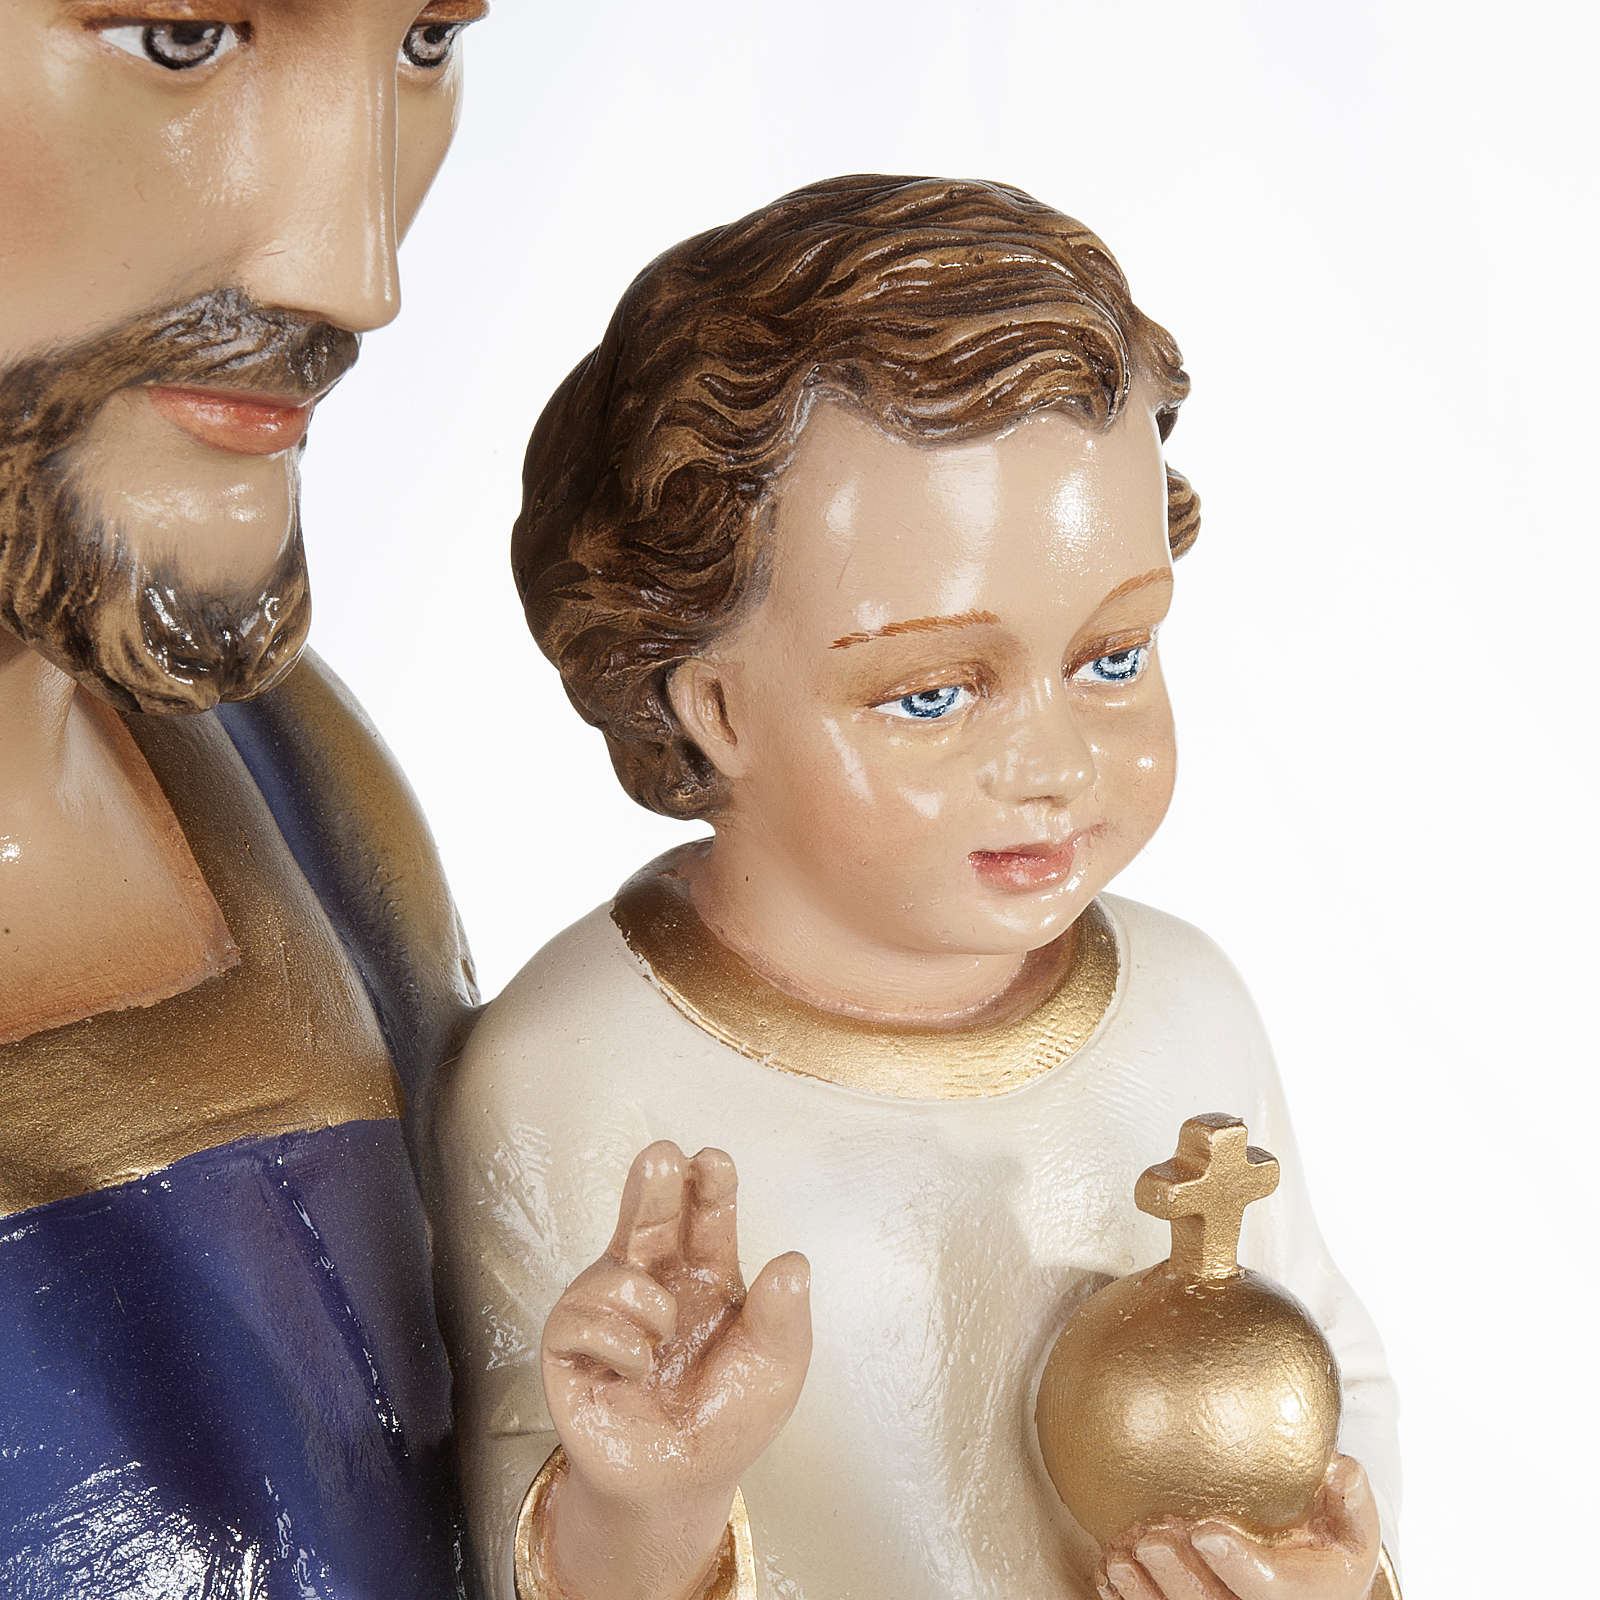 Saint Joseph with infant Jesus,  fiberglass statue, 80 cm 4